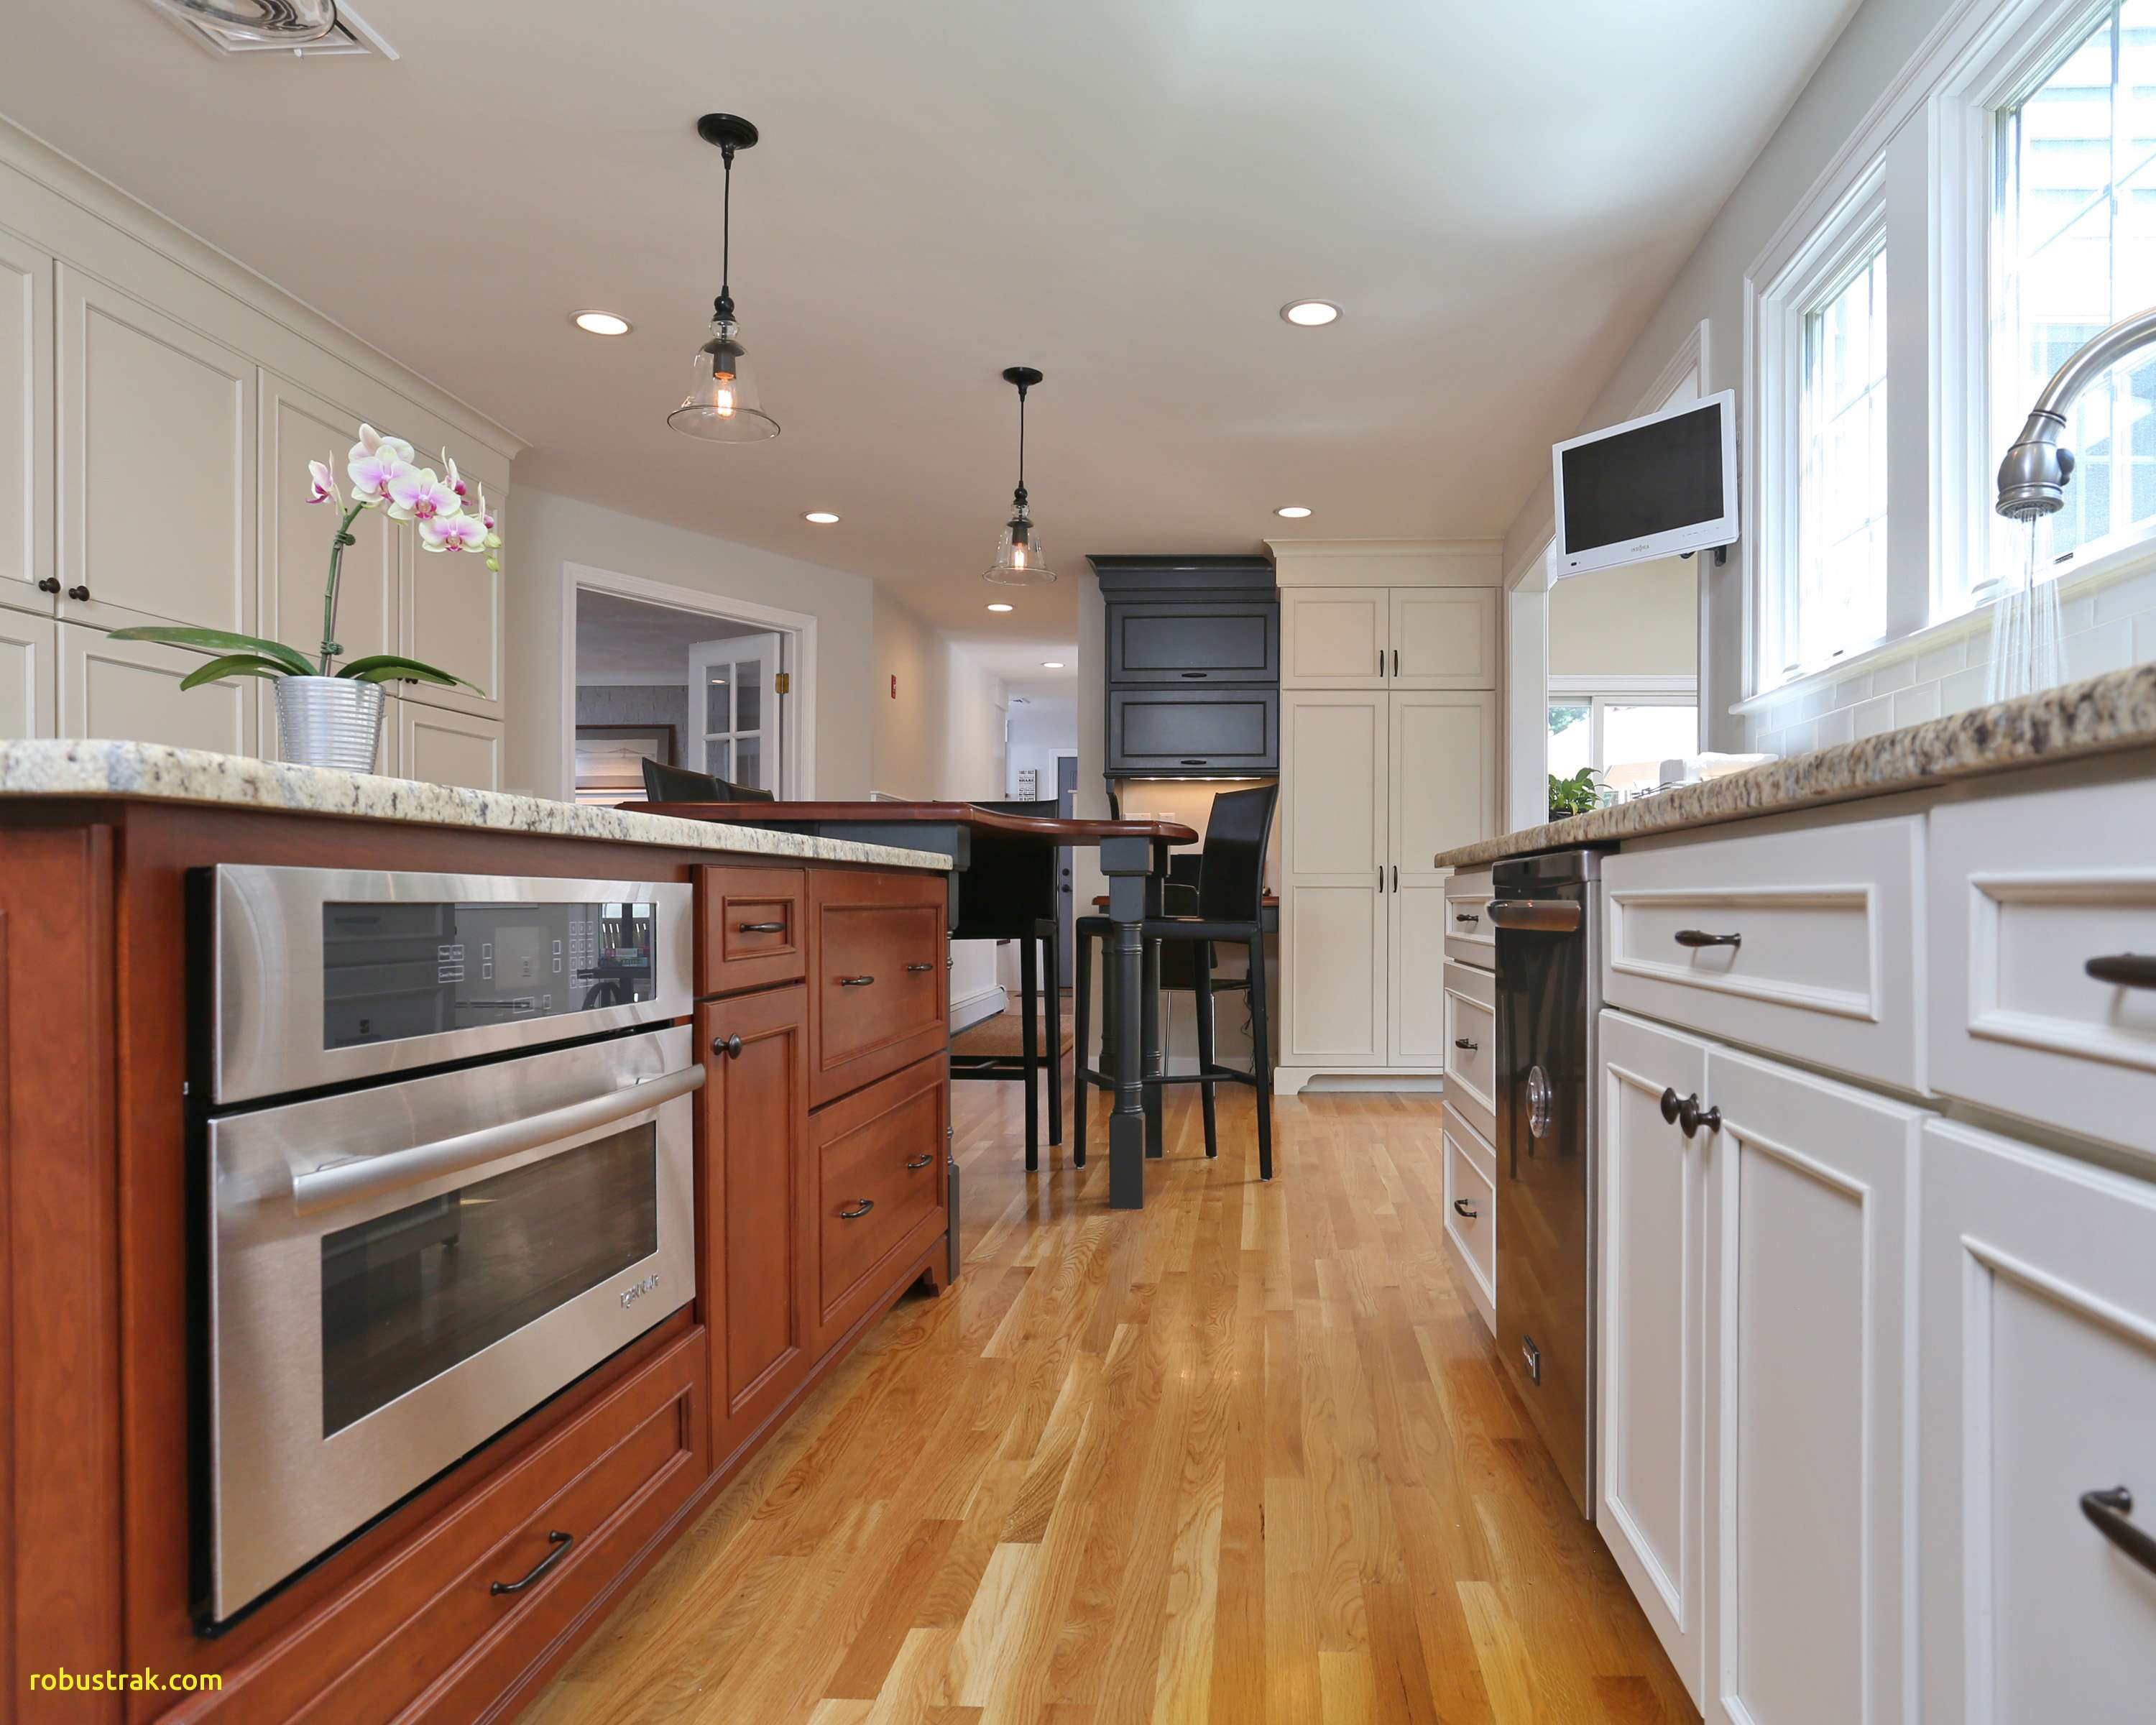 15 Attractive Kitchen Ideas With Dark Hardwood Floors Unique